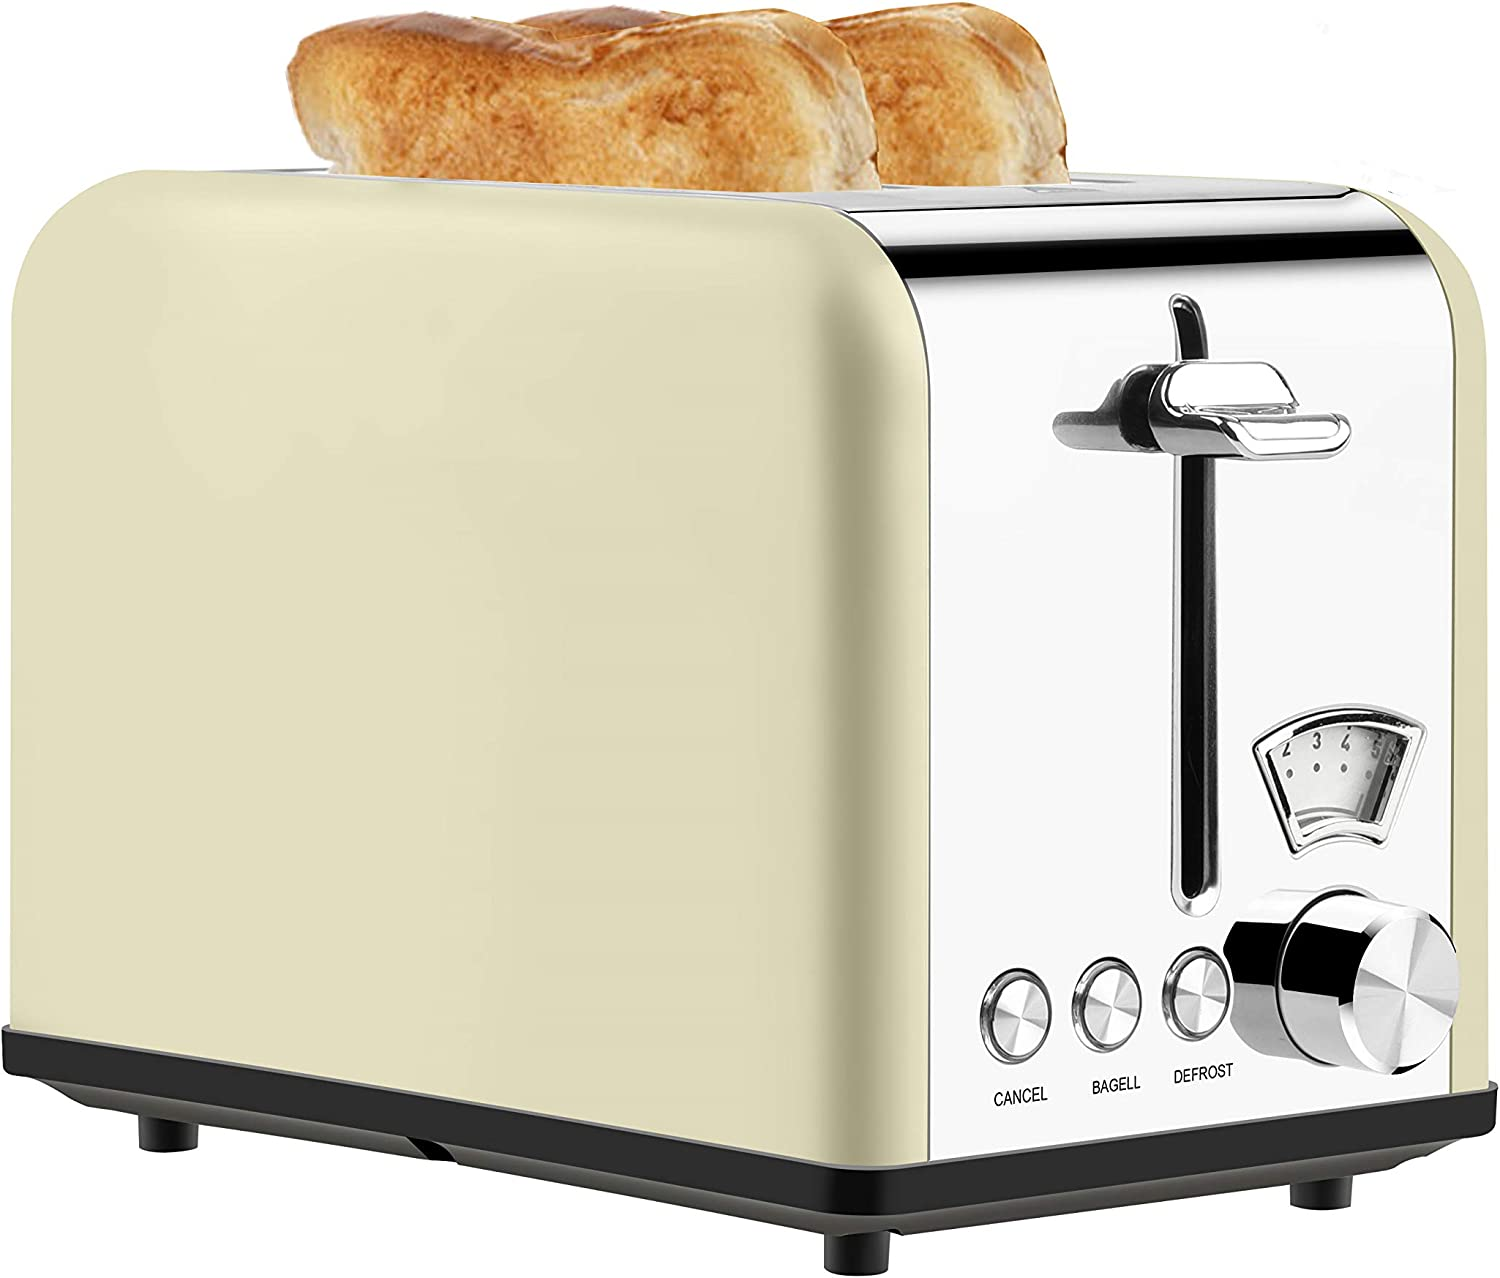 Toaster 2 Slice Toasters Best Rated Prime Bread Toaster with Visible Window Setting for 5 Brown Level,Compact Stainless Steel 2 slice Toaster with Bagel/Defrost/Cancel Functions,Extra Wide Slots,Removable Crumb Tray(825W).